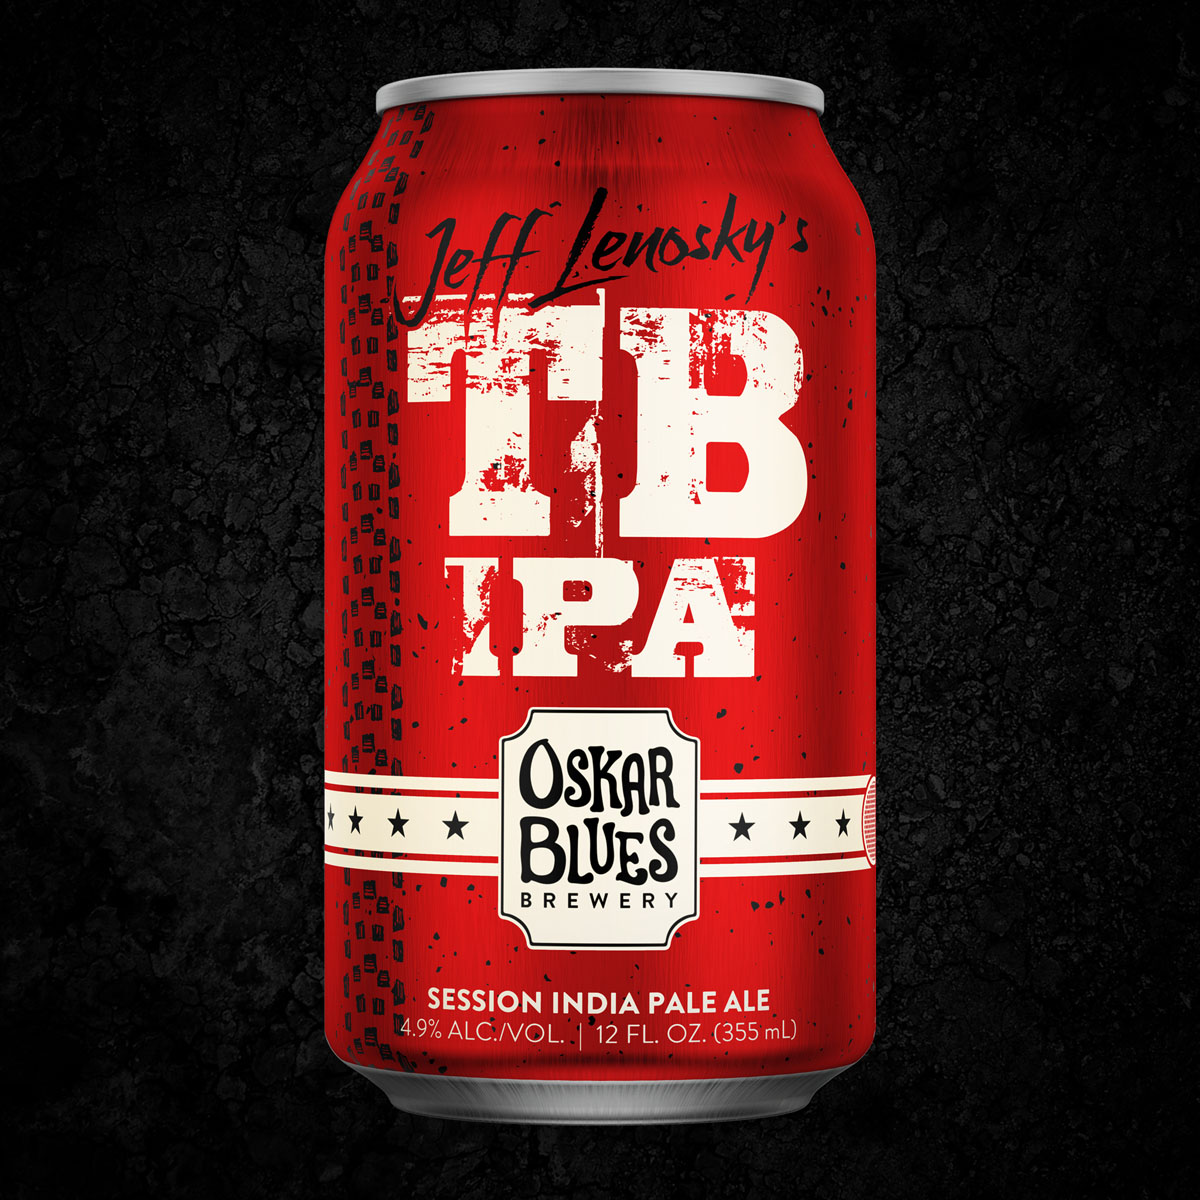 Jeff Lenosky x Oskar Blues TB IPA is a Trail Boss inspired beer to support Can'd Aid